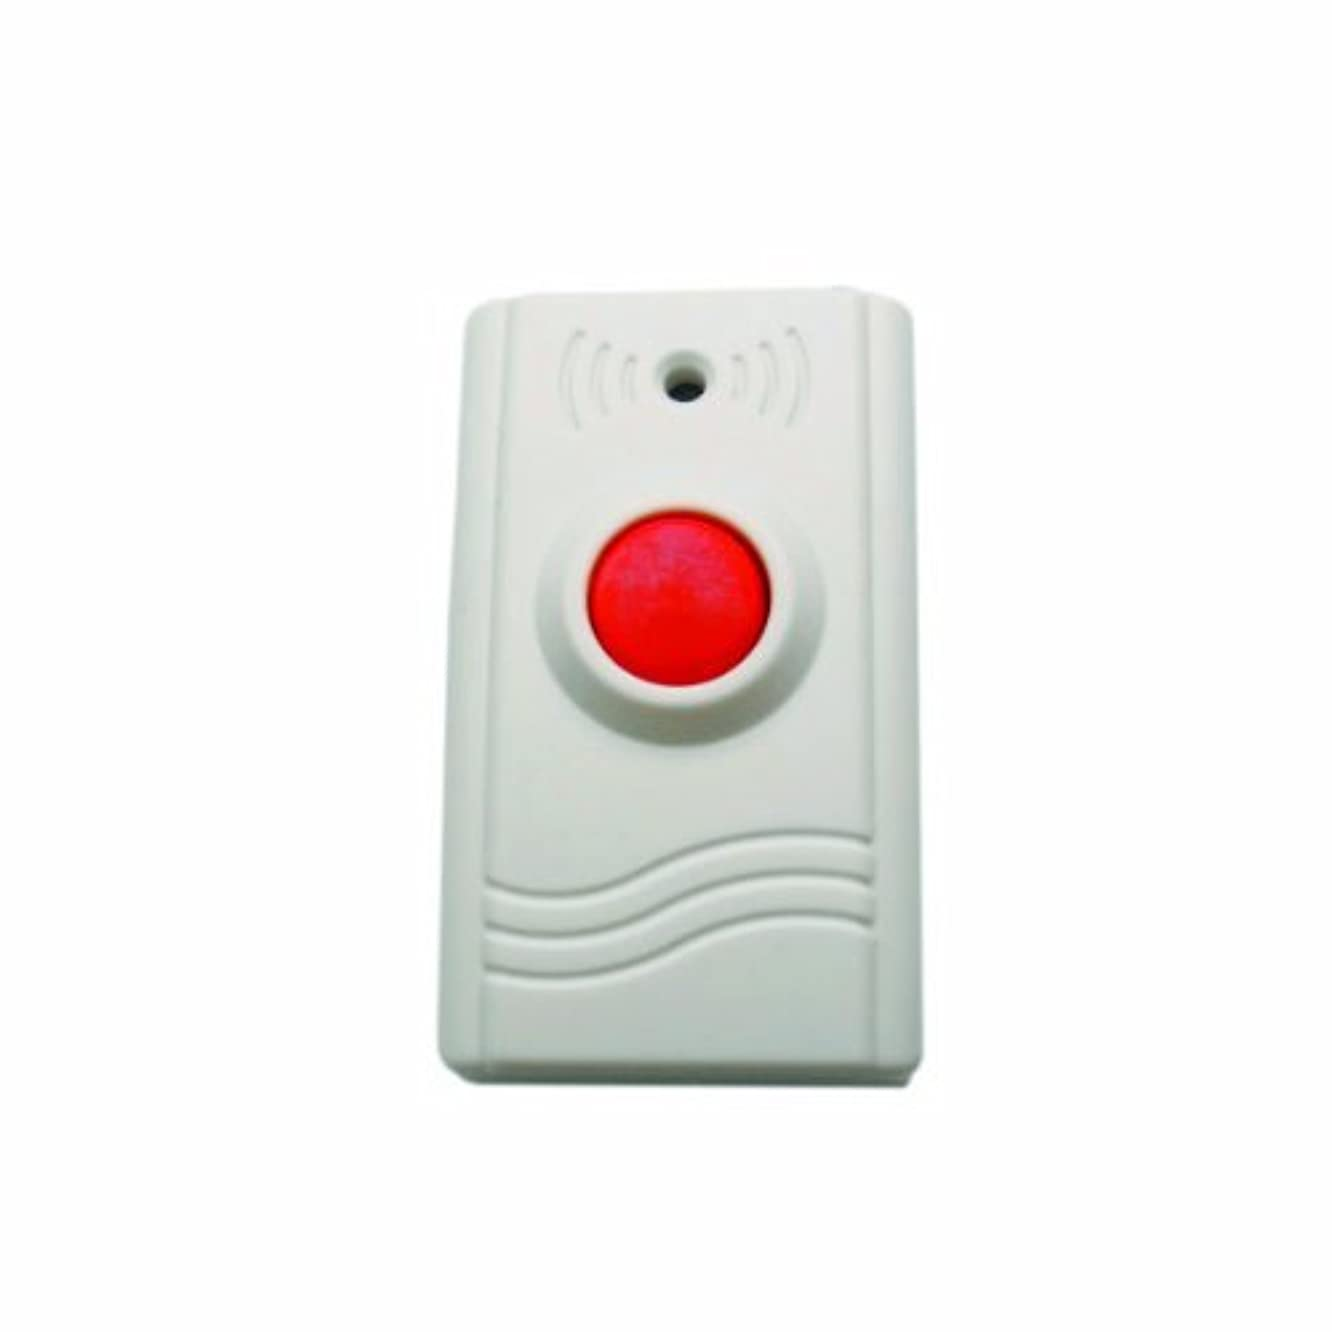 Drive Medical 850000165 Automatic Door Opener Remote Control, White